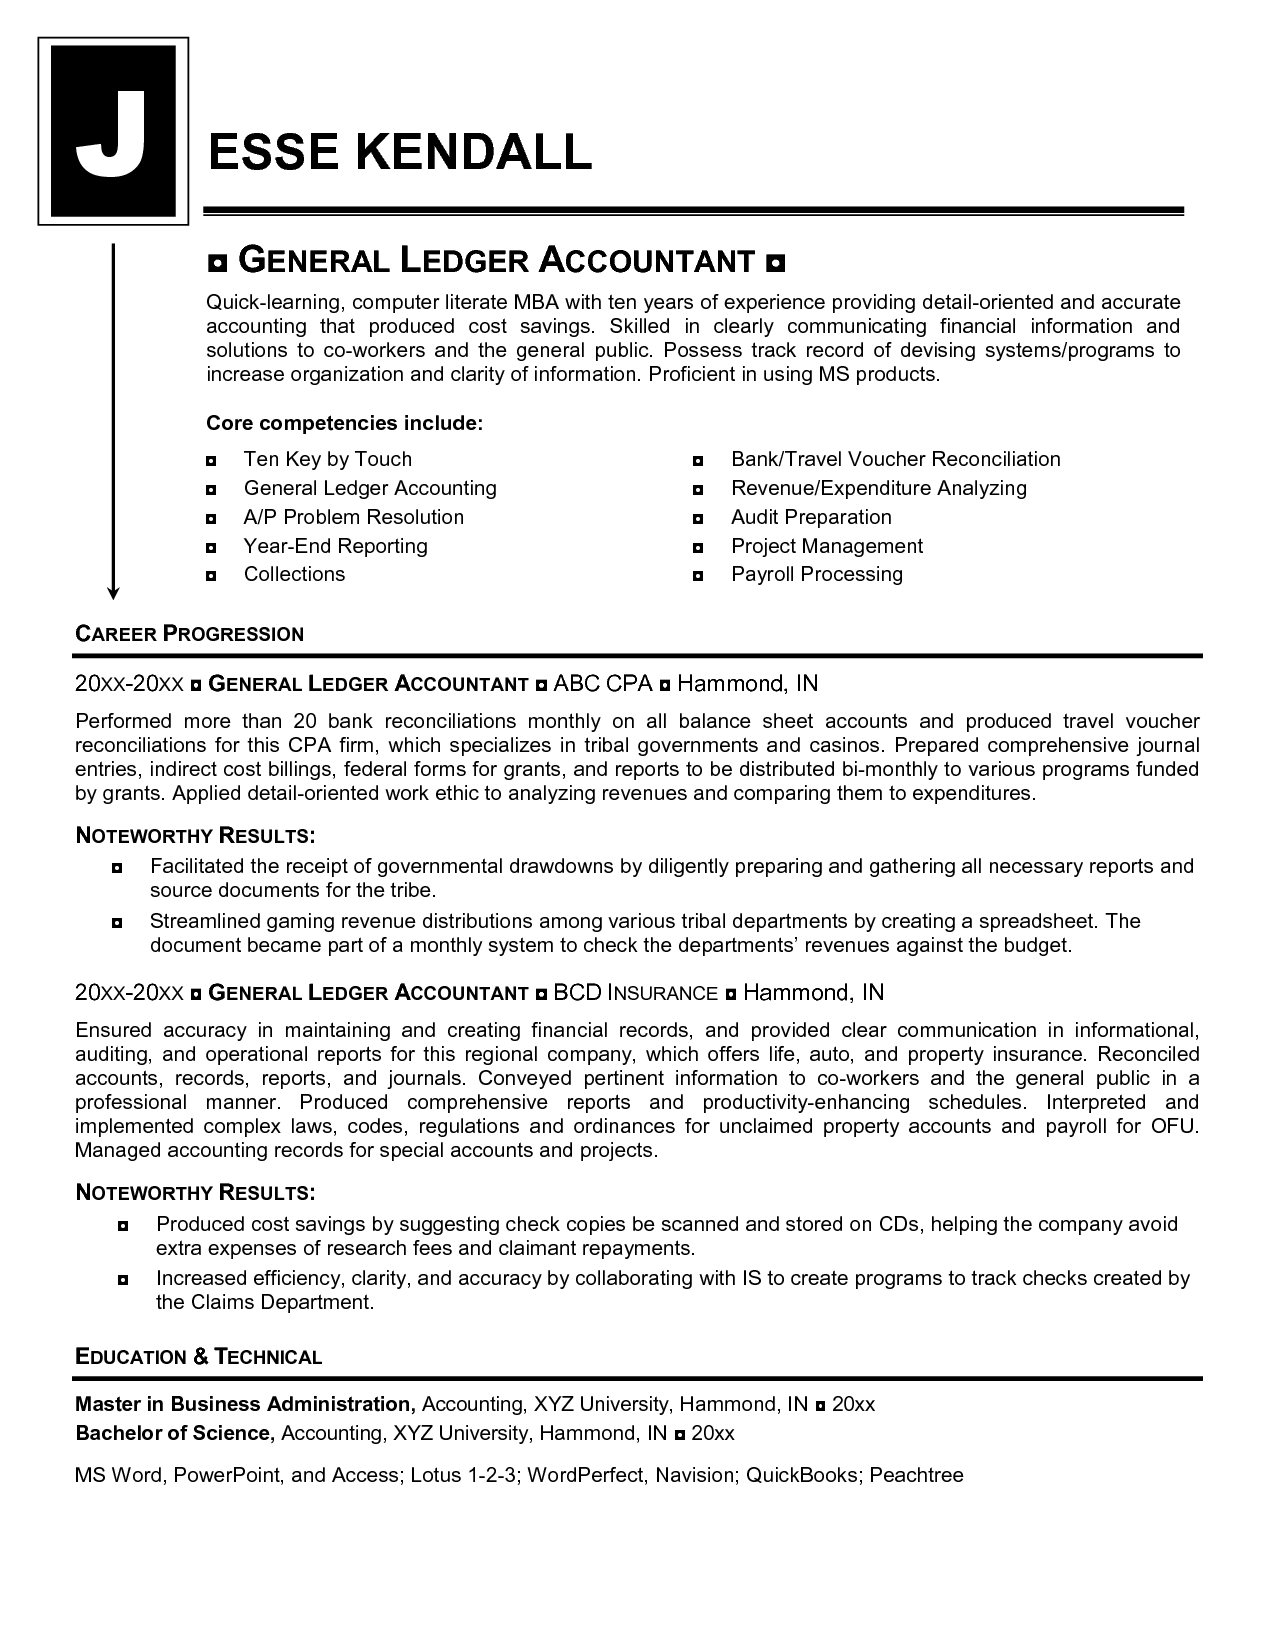 general ledger accountant resume mikes blog - Professional Accounting Resume Samples